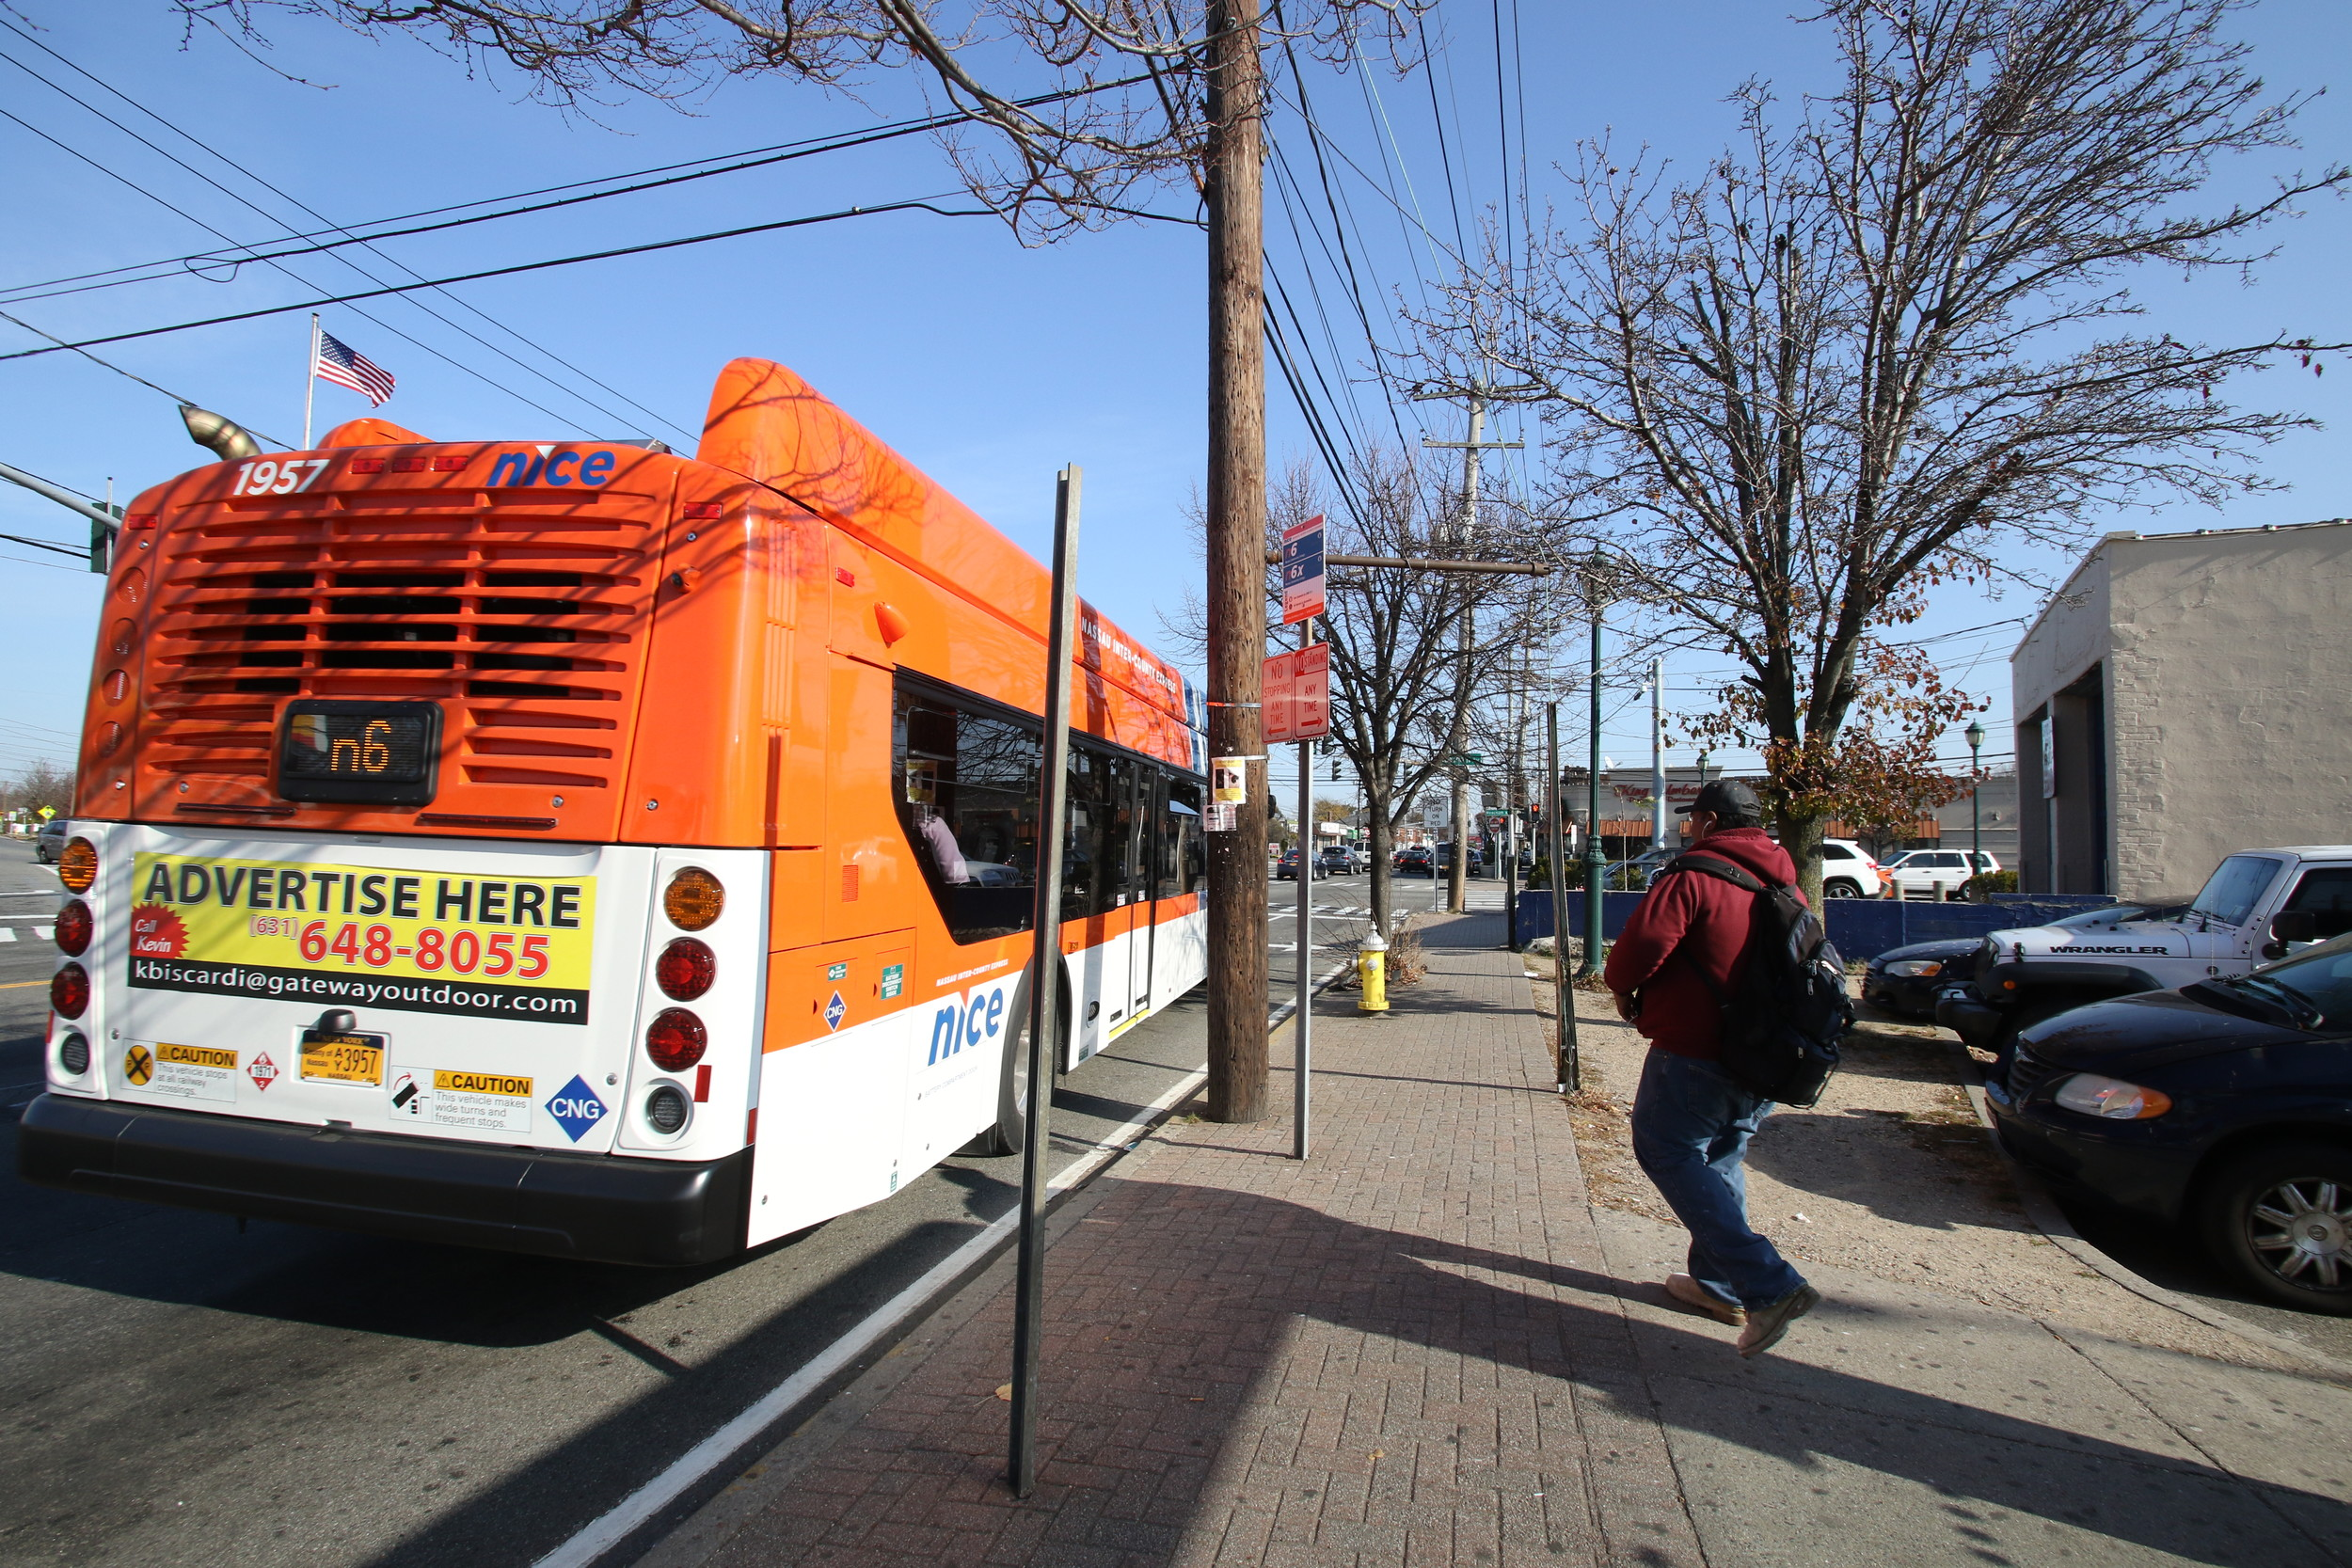 The Elmont Flexi of the Nassau Inter-County Express is one line among several routes expected to be reduced because of budget constraints.